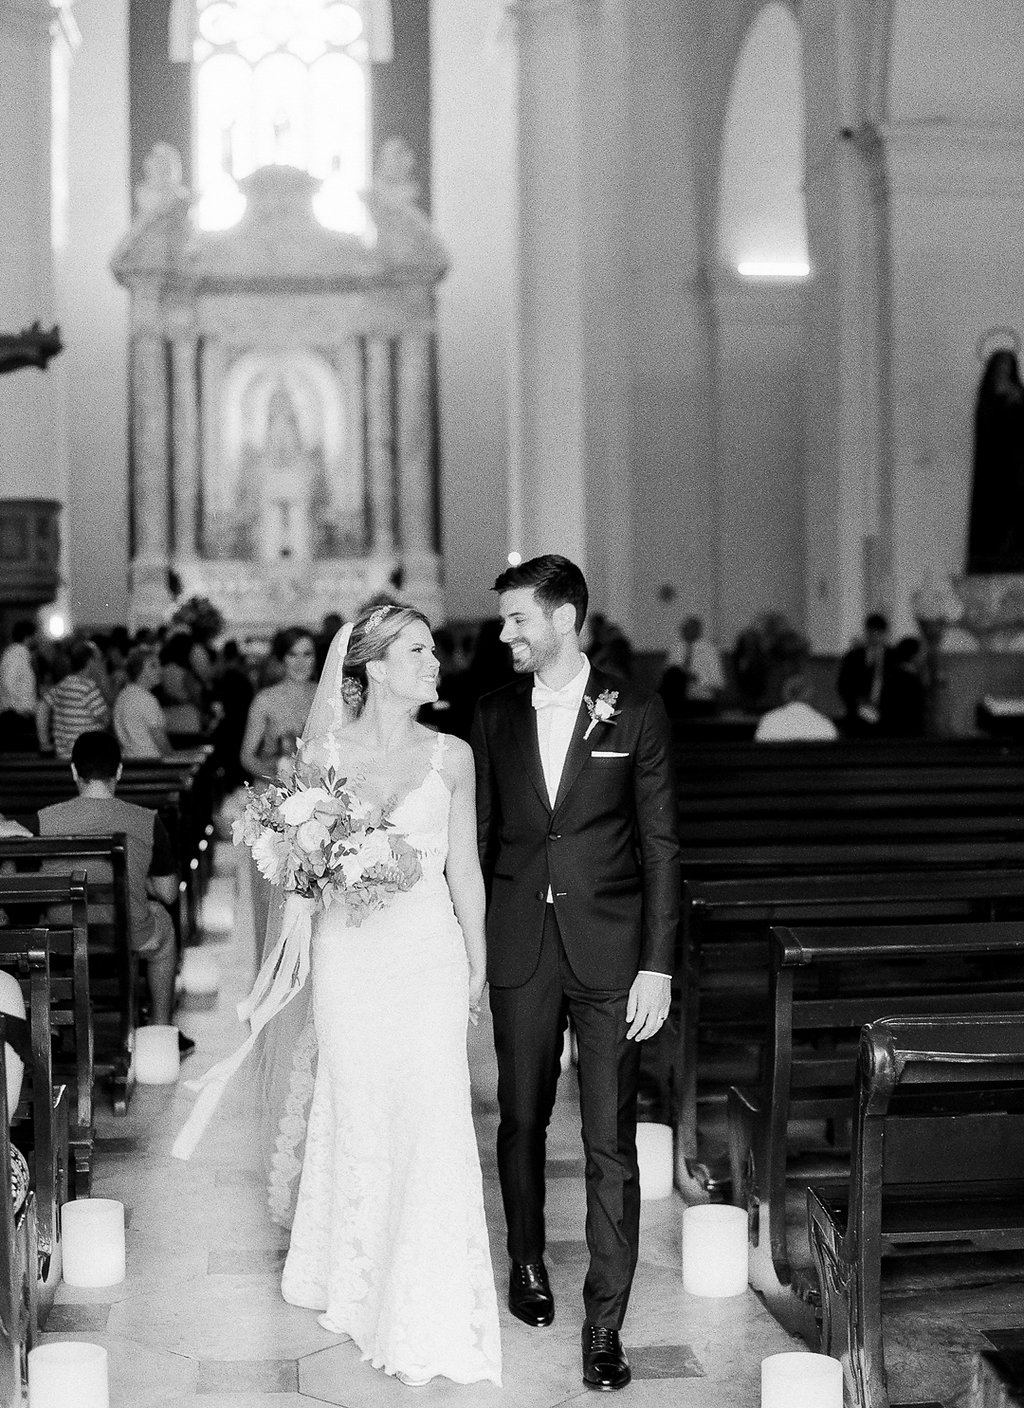 Fine art film photographer photography wedding engagement washington DC cartegena columbia destination modern bride inspiration inspired classic timeless california ny photos styling travel ceremony